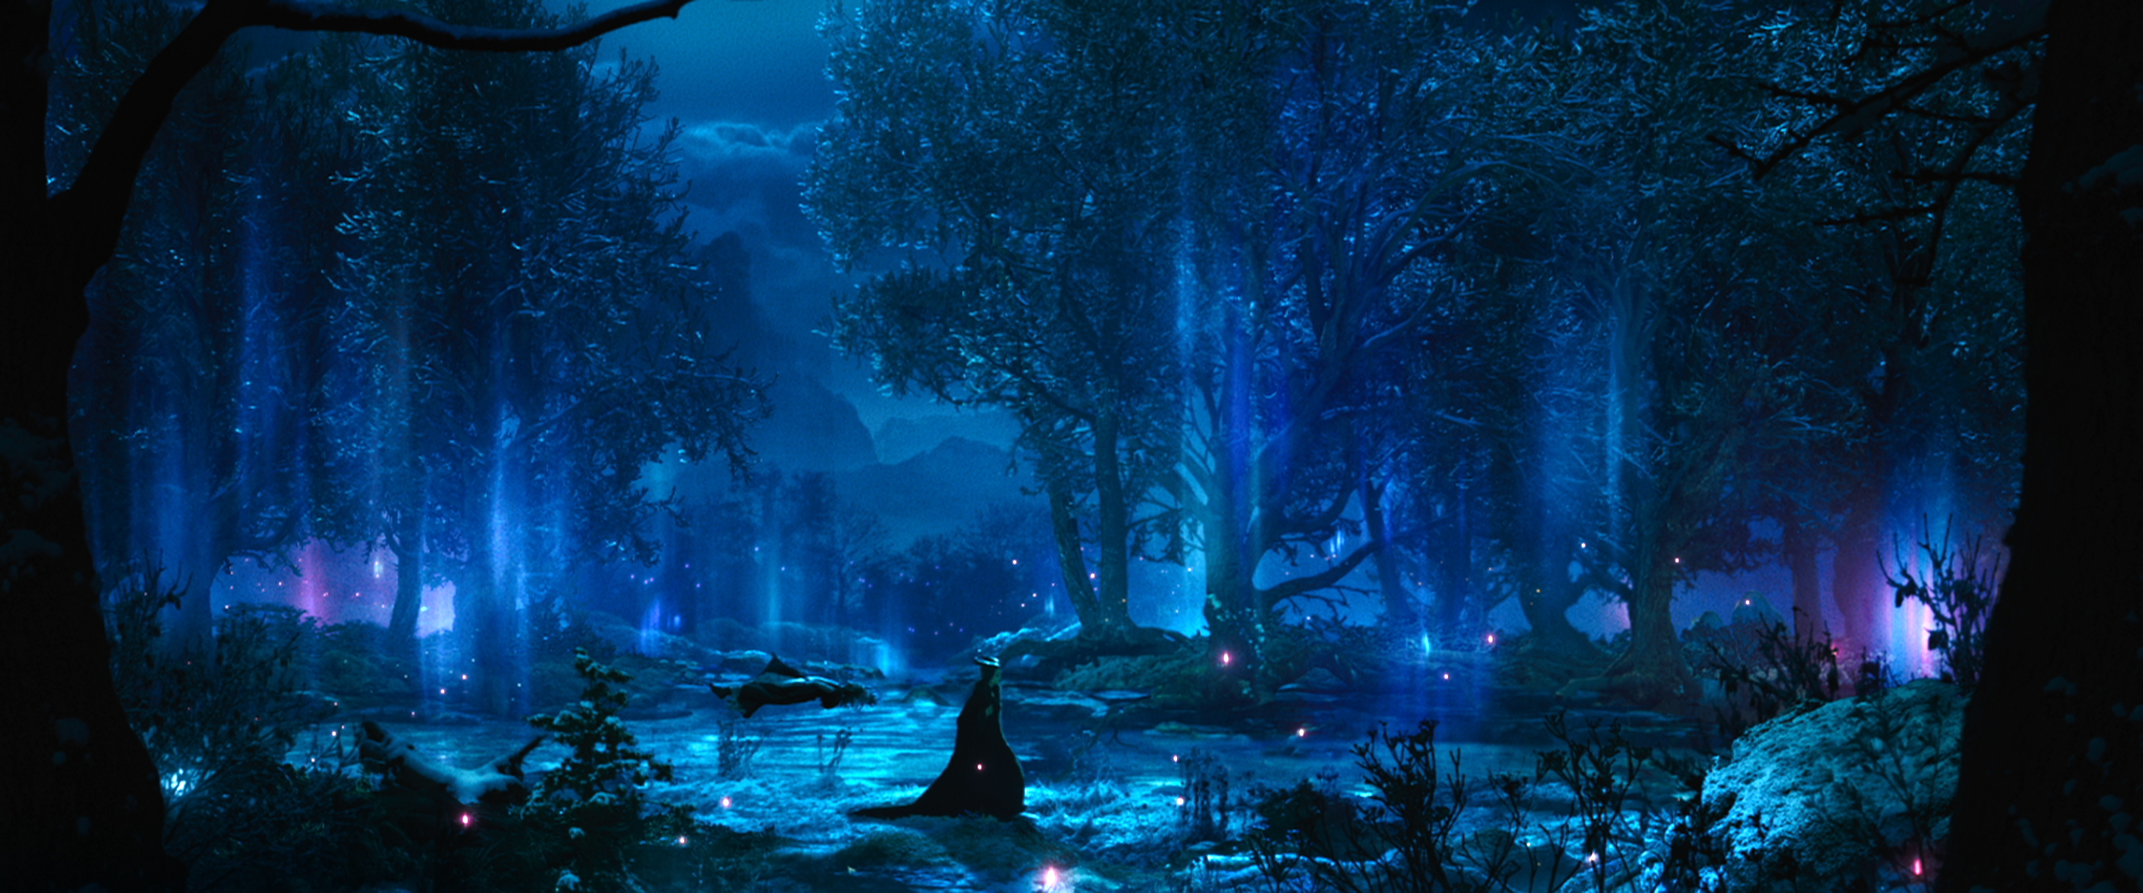 Maleficent Movie 2014 Hd Ipad Iphone Wallpapers: 16 New Stills From Disney's 'Maleficent'